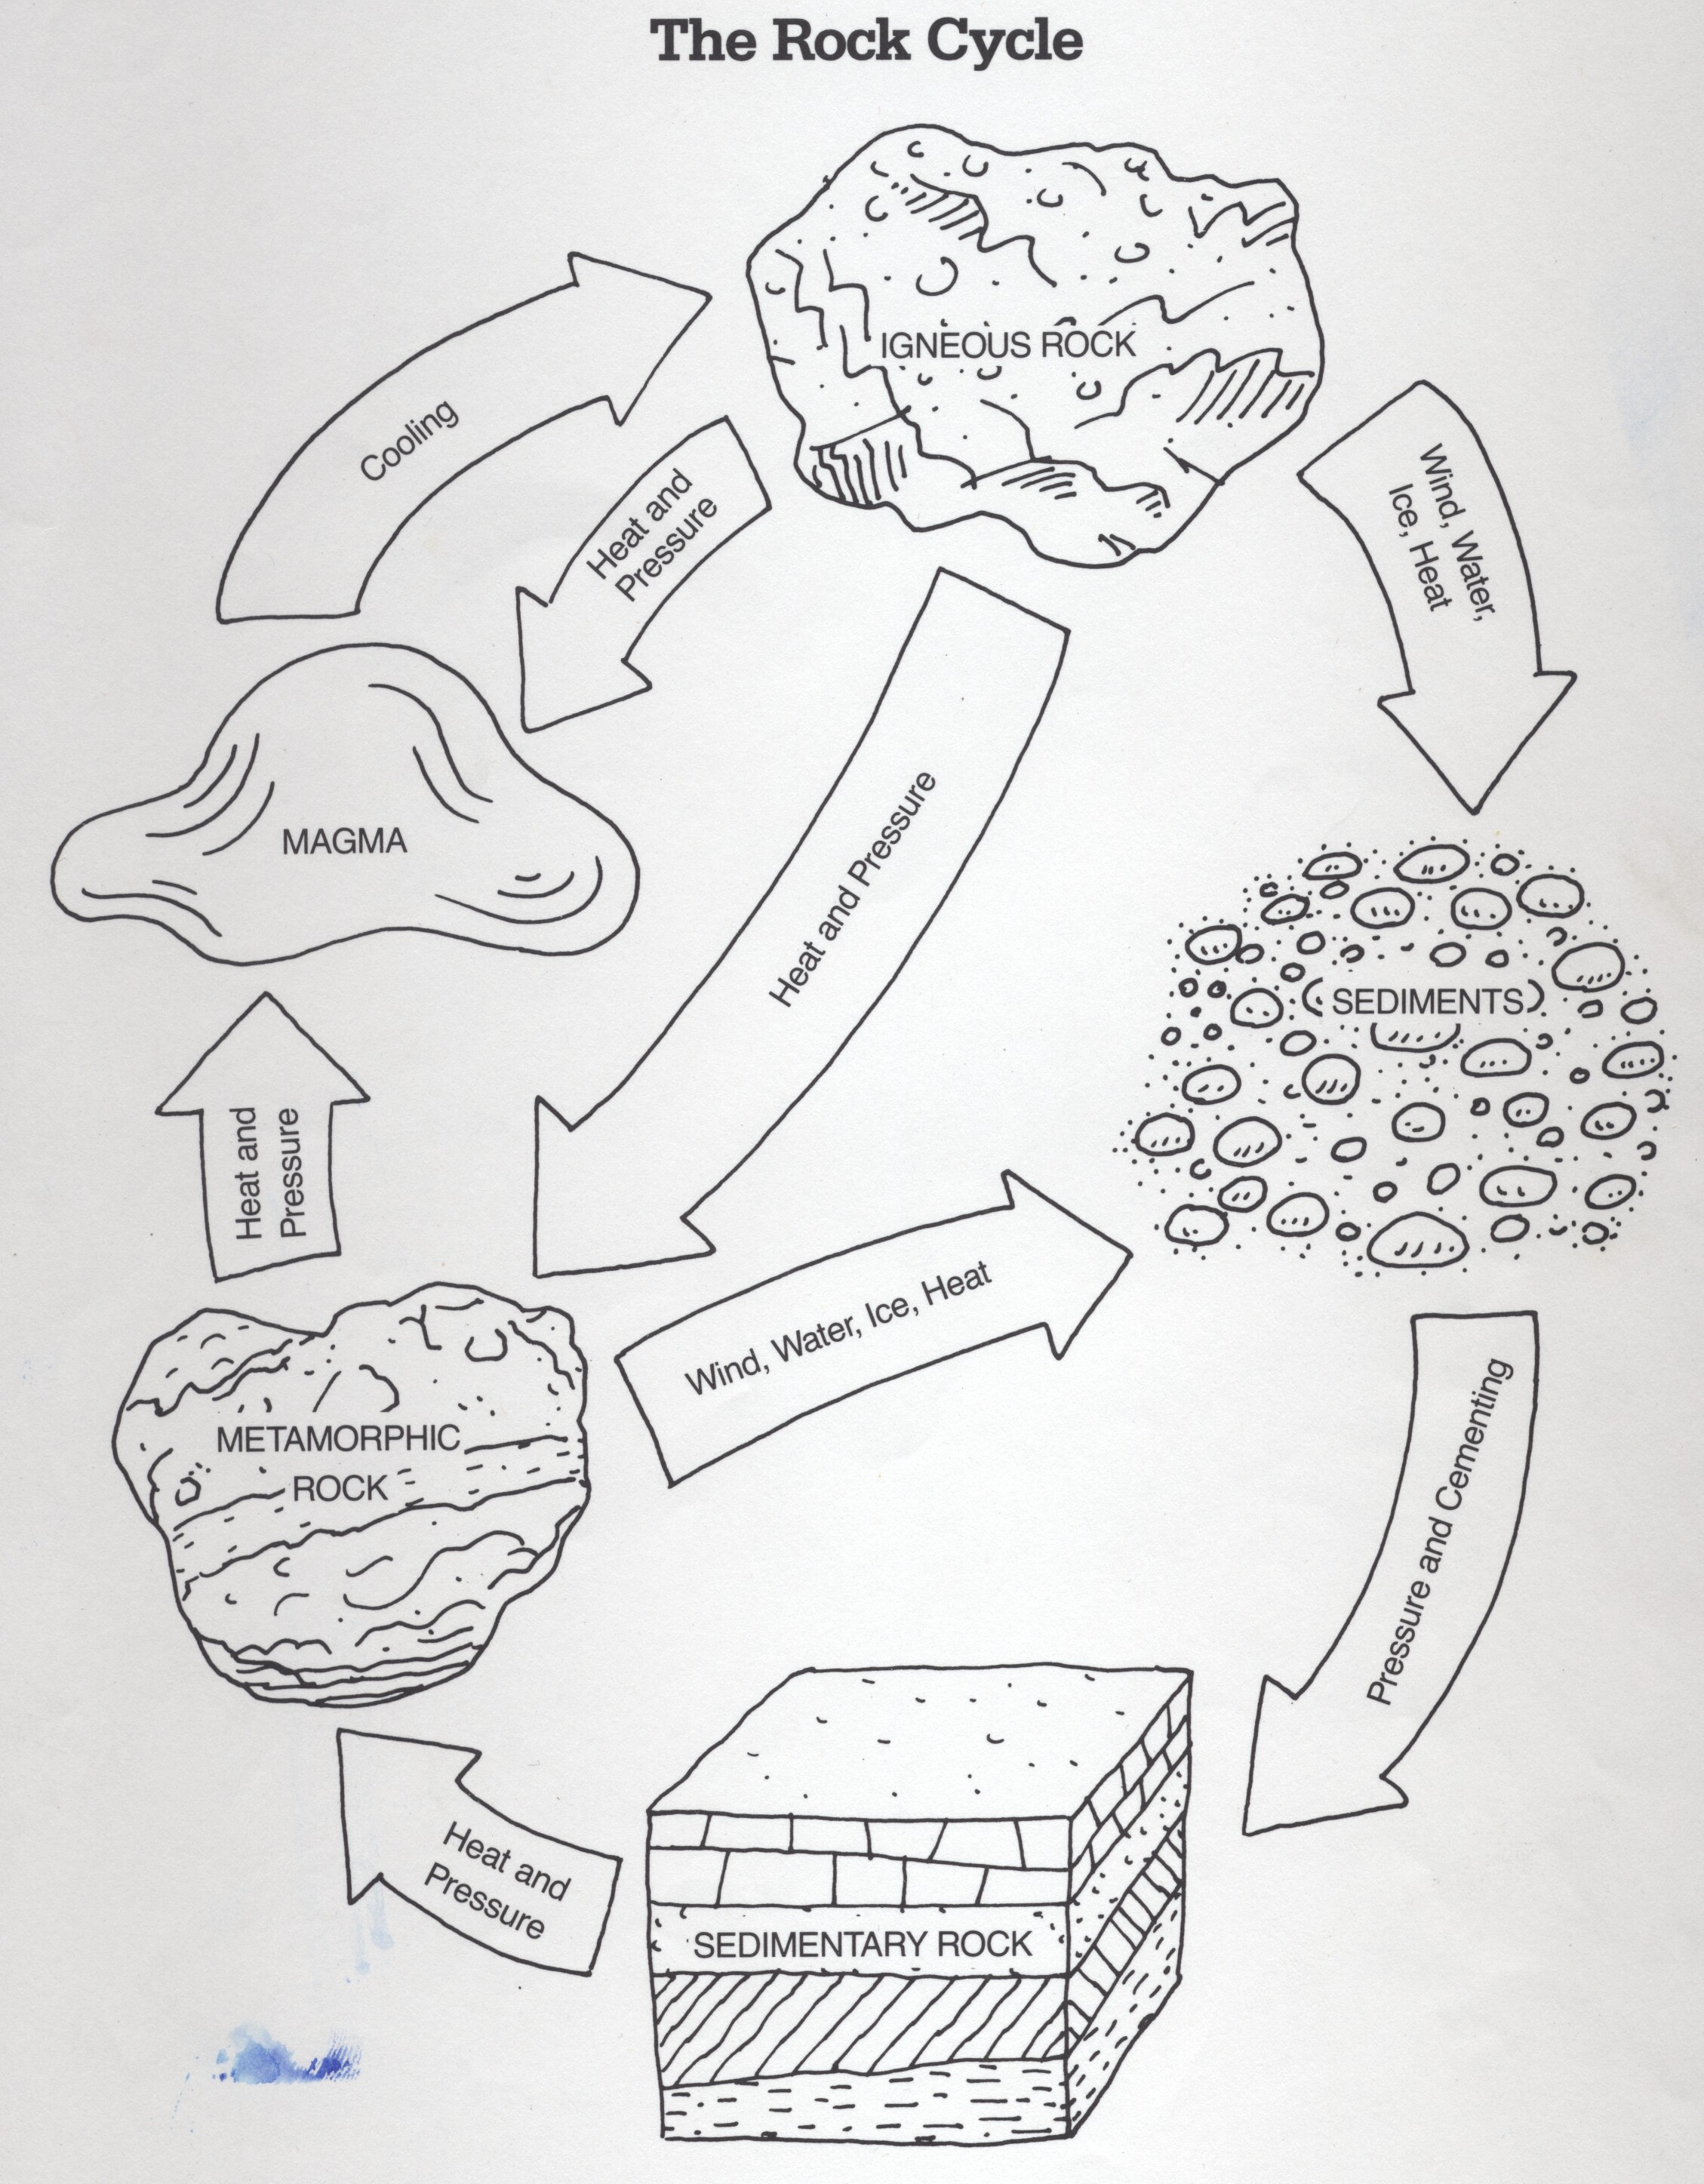 The Rock Cycle Coloring Page | Murderthestout